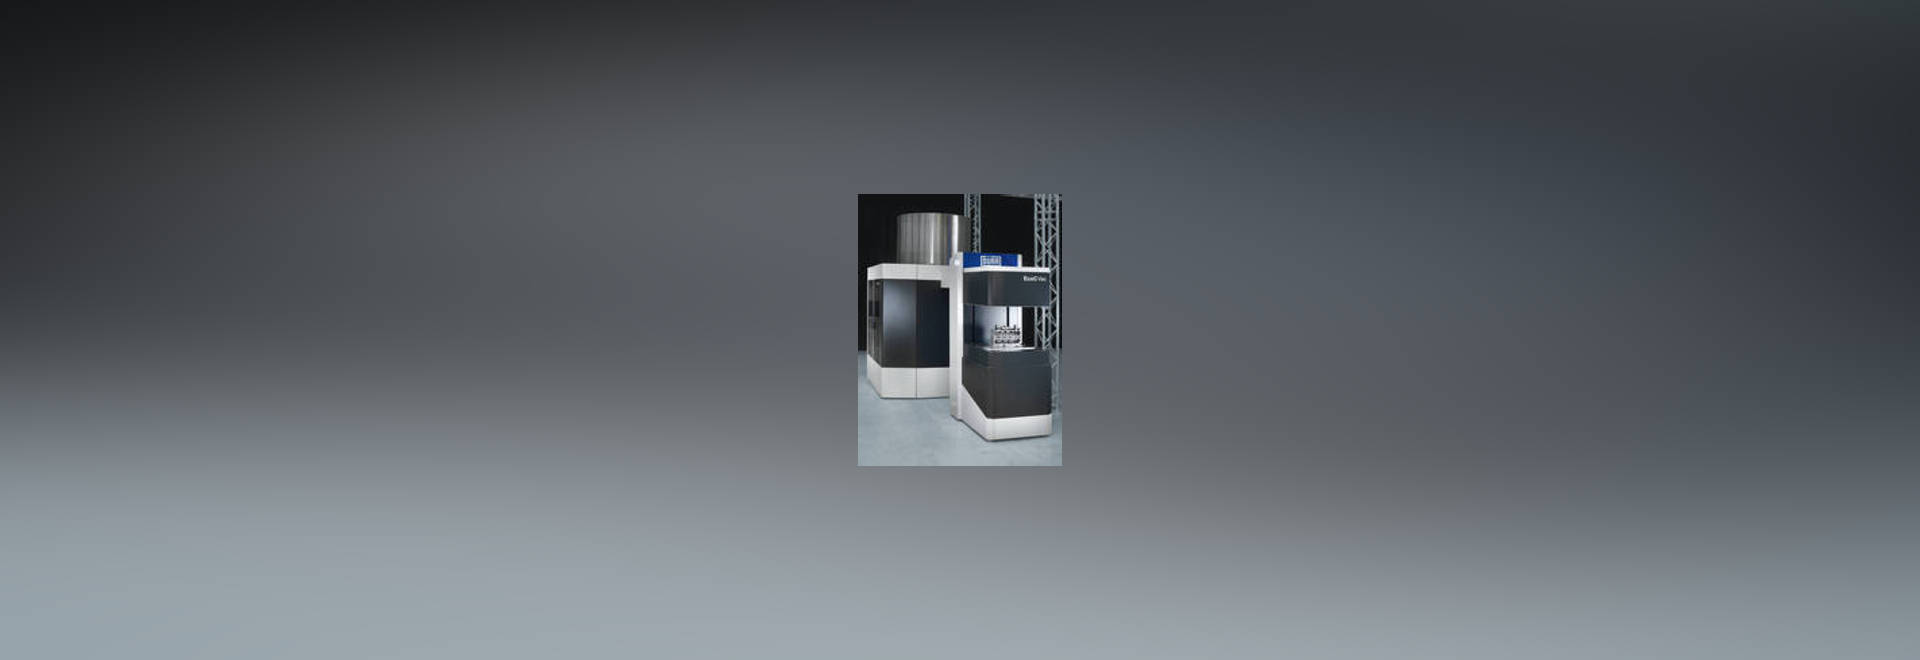 EcoCVac pre-cleaning and intermediate cleaning system, designed for machined powertrain components, employs vacuum suction technology to ensure contaminants are removed from part as well as work ch...